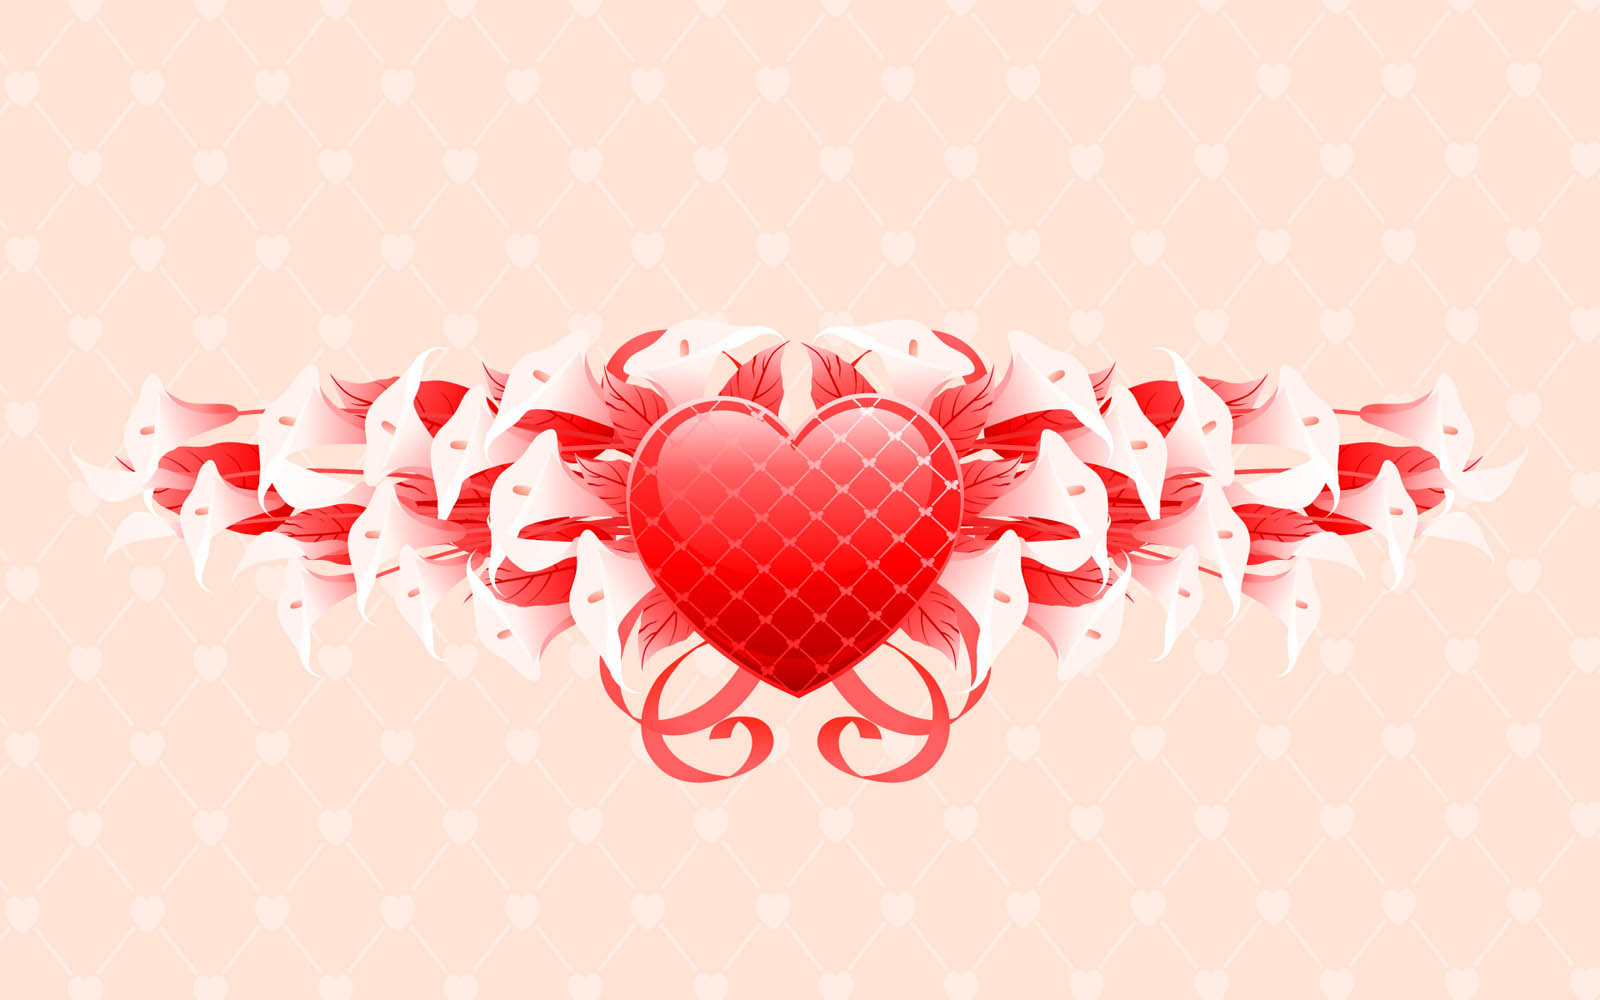 Love Wallpapers Vector : wallpapers: Vector Love Wallpapers